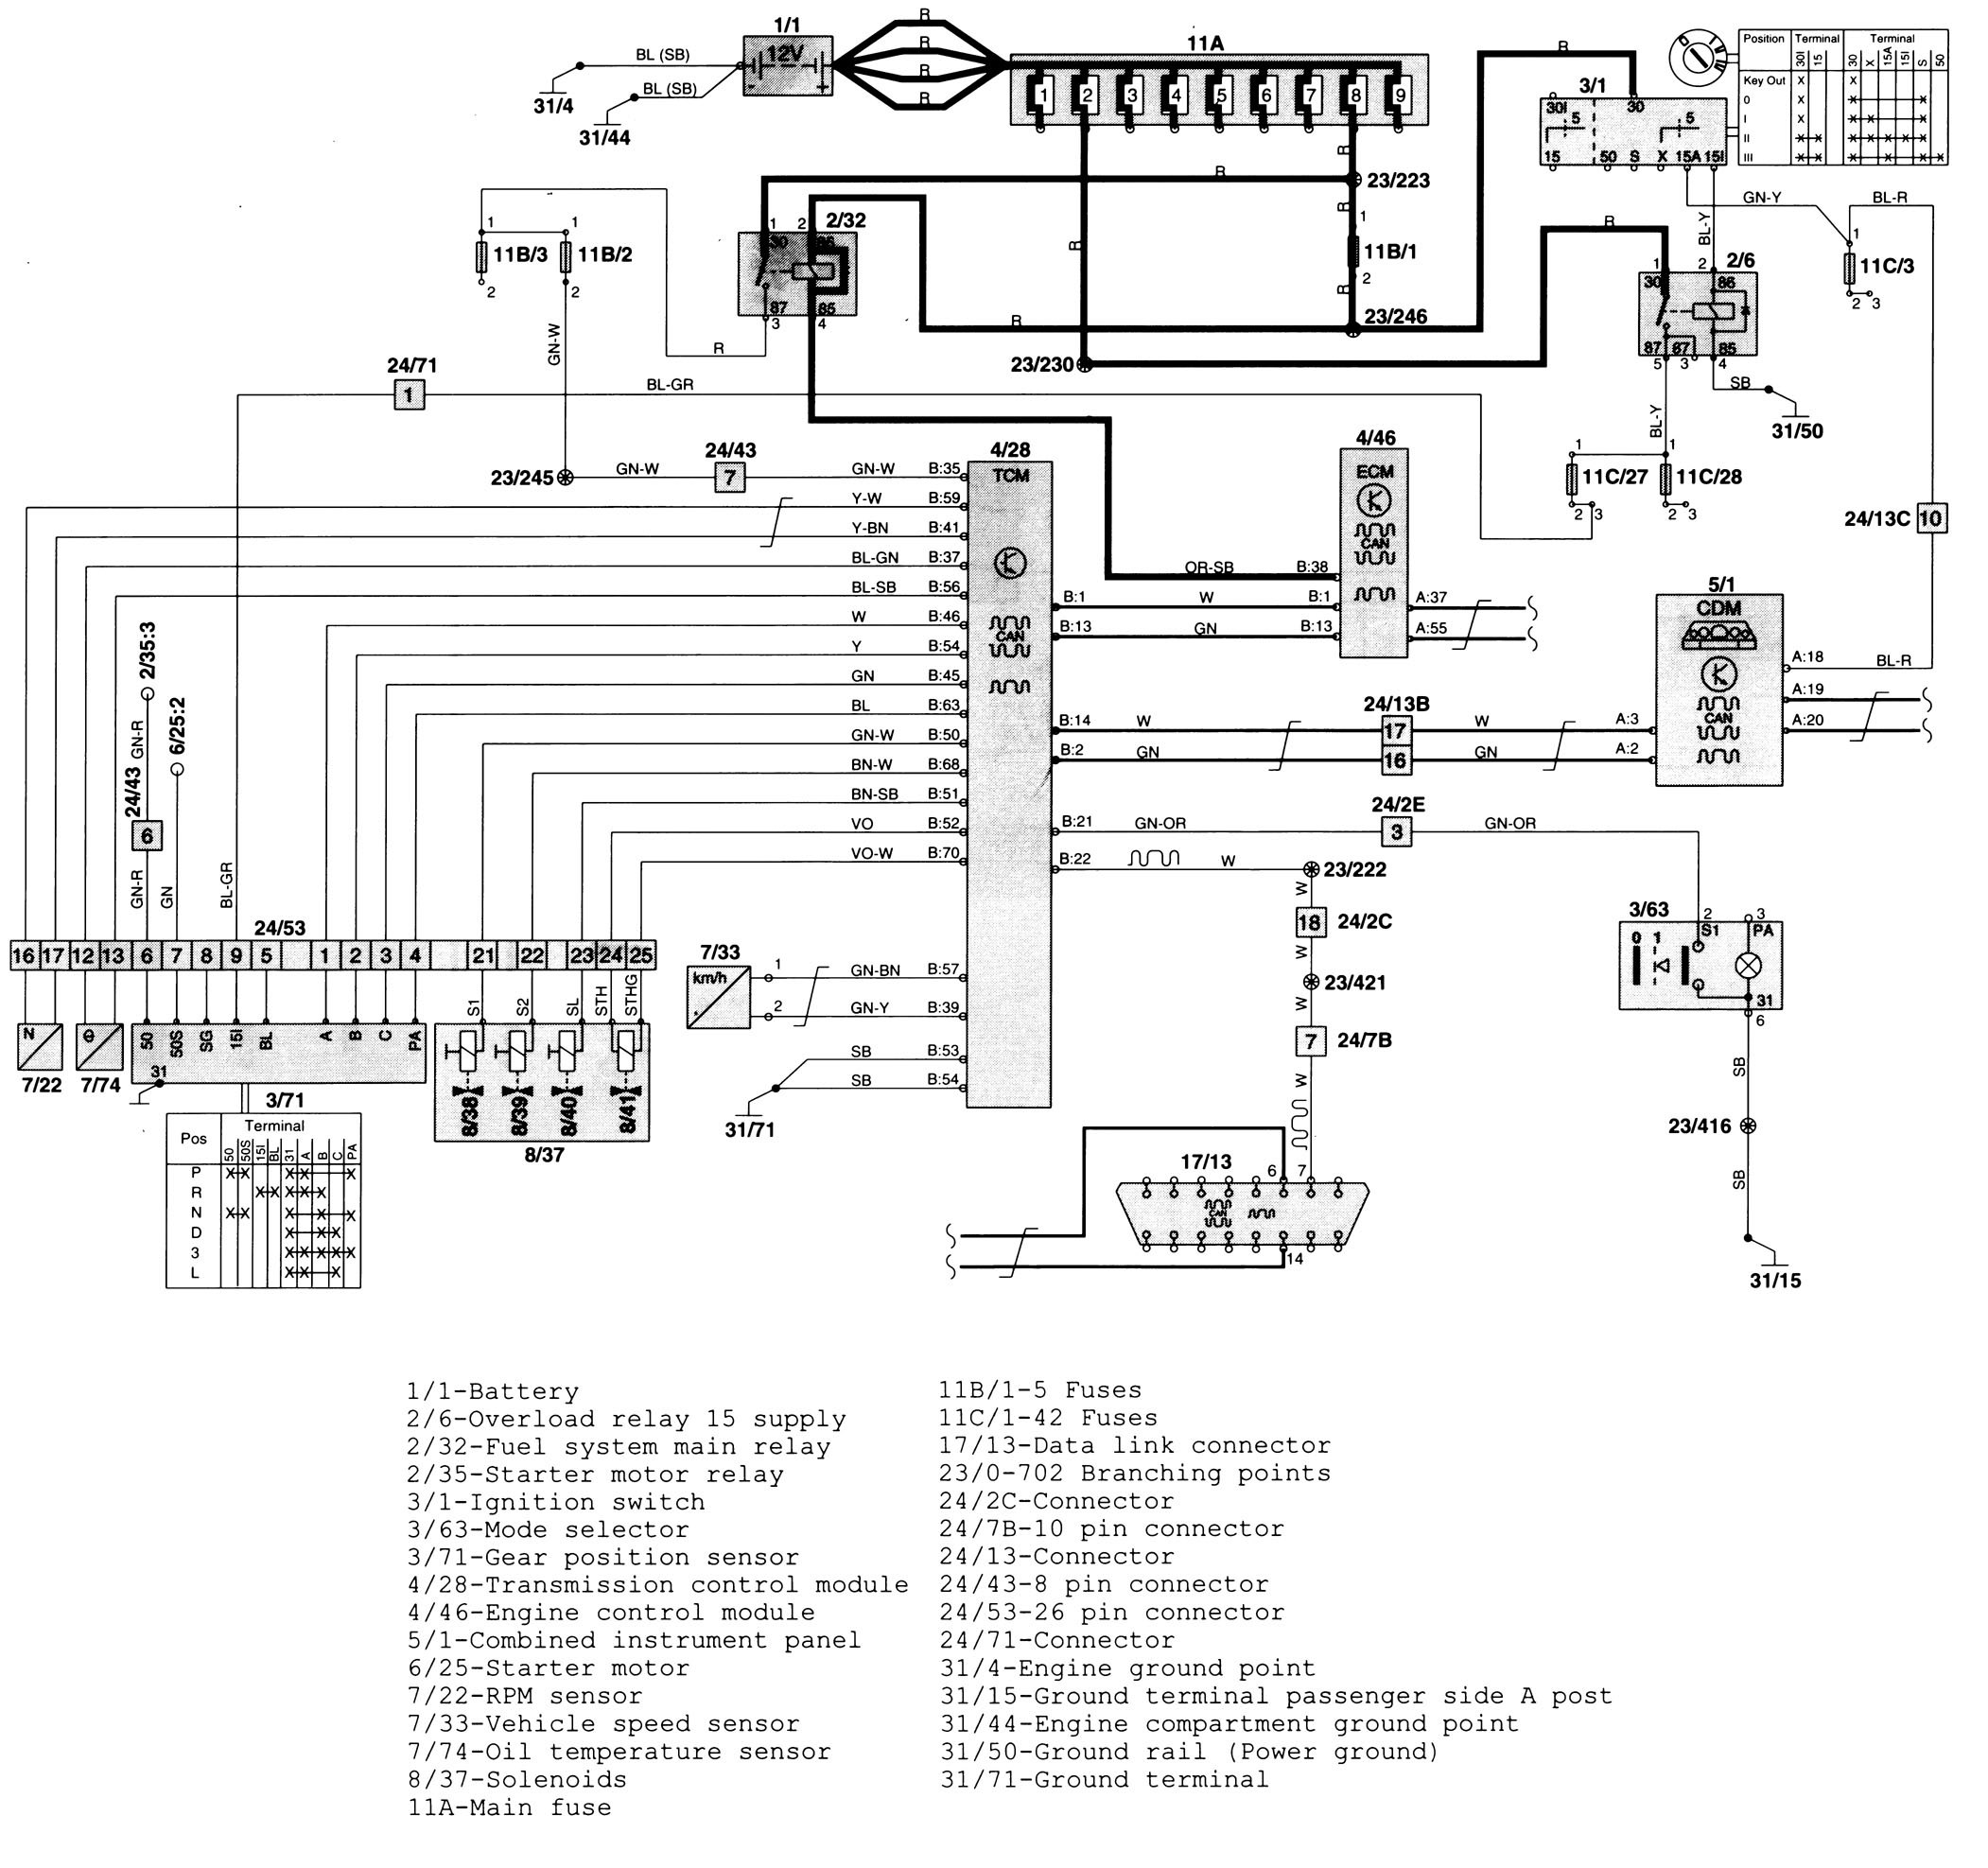 volvo c70 wiring diagram transmission controls 1999 volvo c70 (1999) wiring diagrams transmission controls c70 wiring diagram at bakdesigns.co